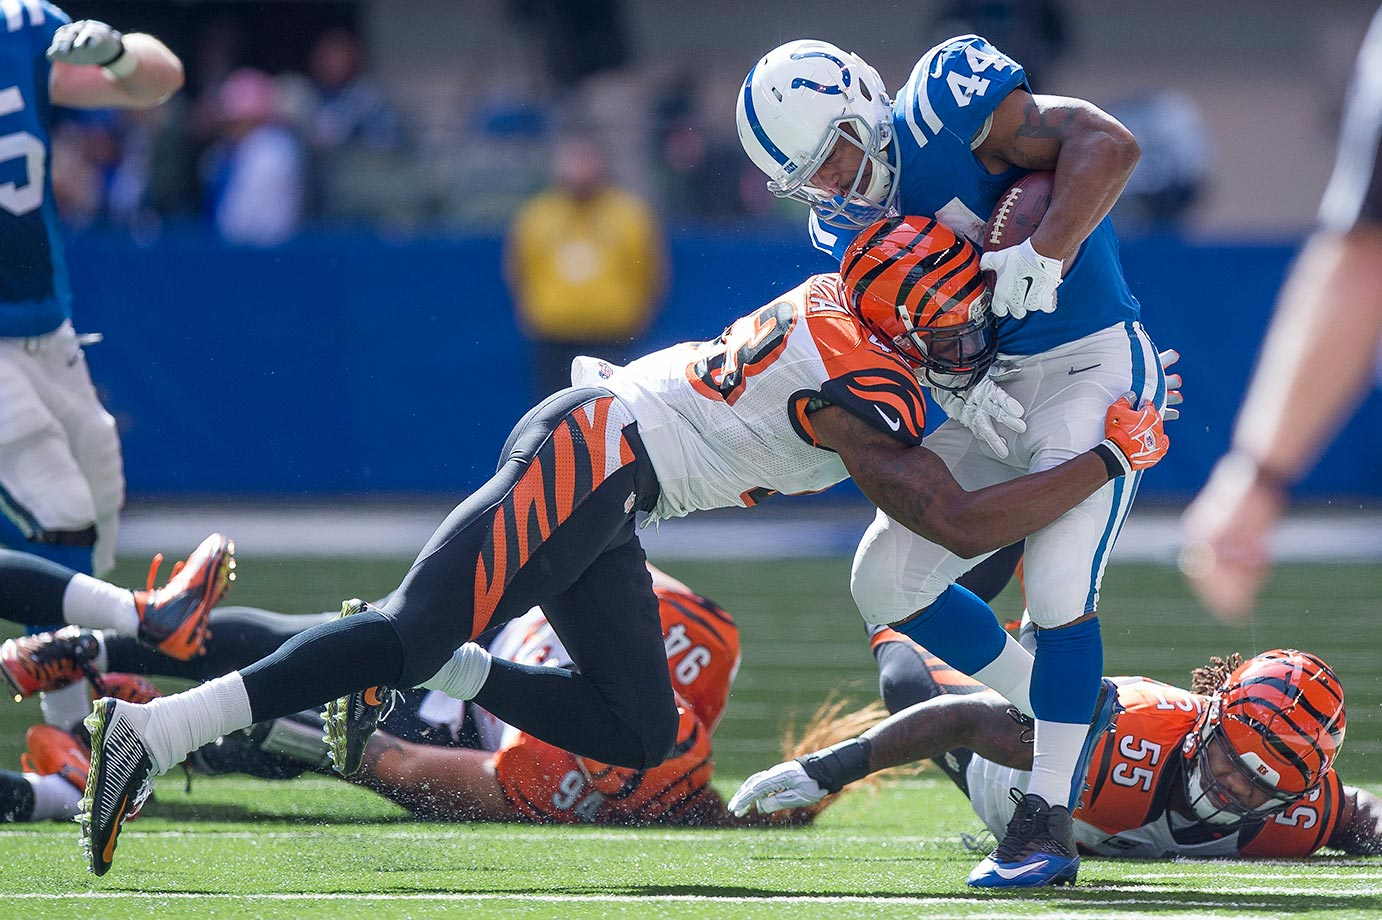 It took the highly athletic Iloka a while to get the hang of the NFL, but there's no doubt that 2014 was his breakout season, especially as a pass defender. According to Pro Football Focus metrics, no safety in the league with over 500 total snaps had a lower passer rating allowed than Iloka's 18.4. He allowed just 12 catches, 176 yards and no touchdowns on 31 targets, with three picks and six passes defensed.